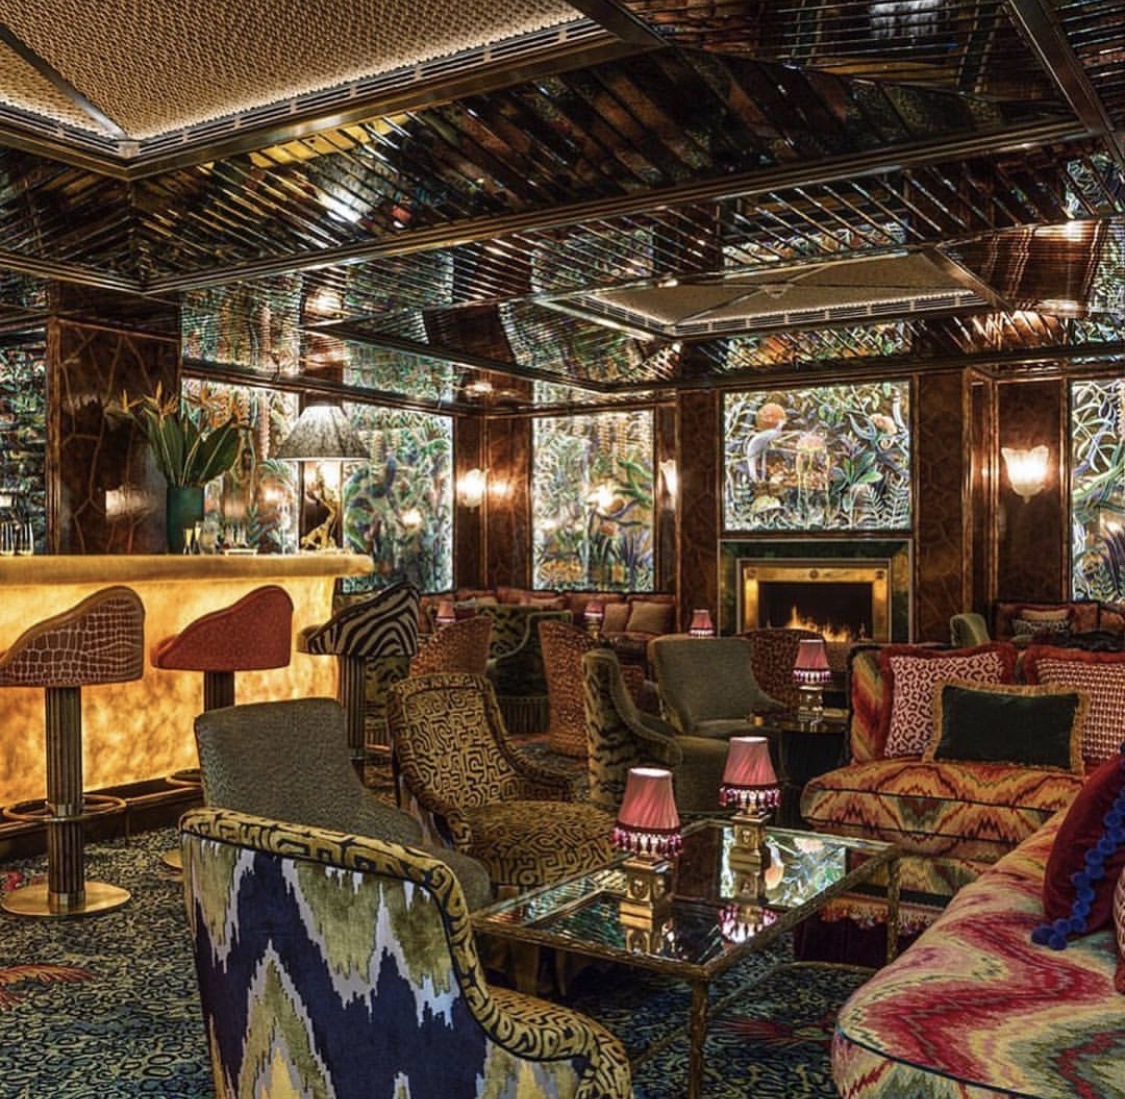 Anabel's Private Members Club in London. Image taken from @annahaymandesigns